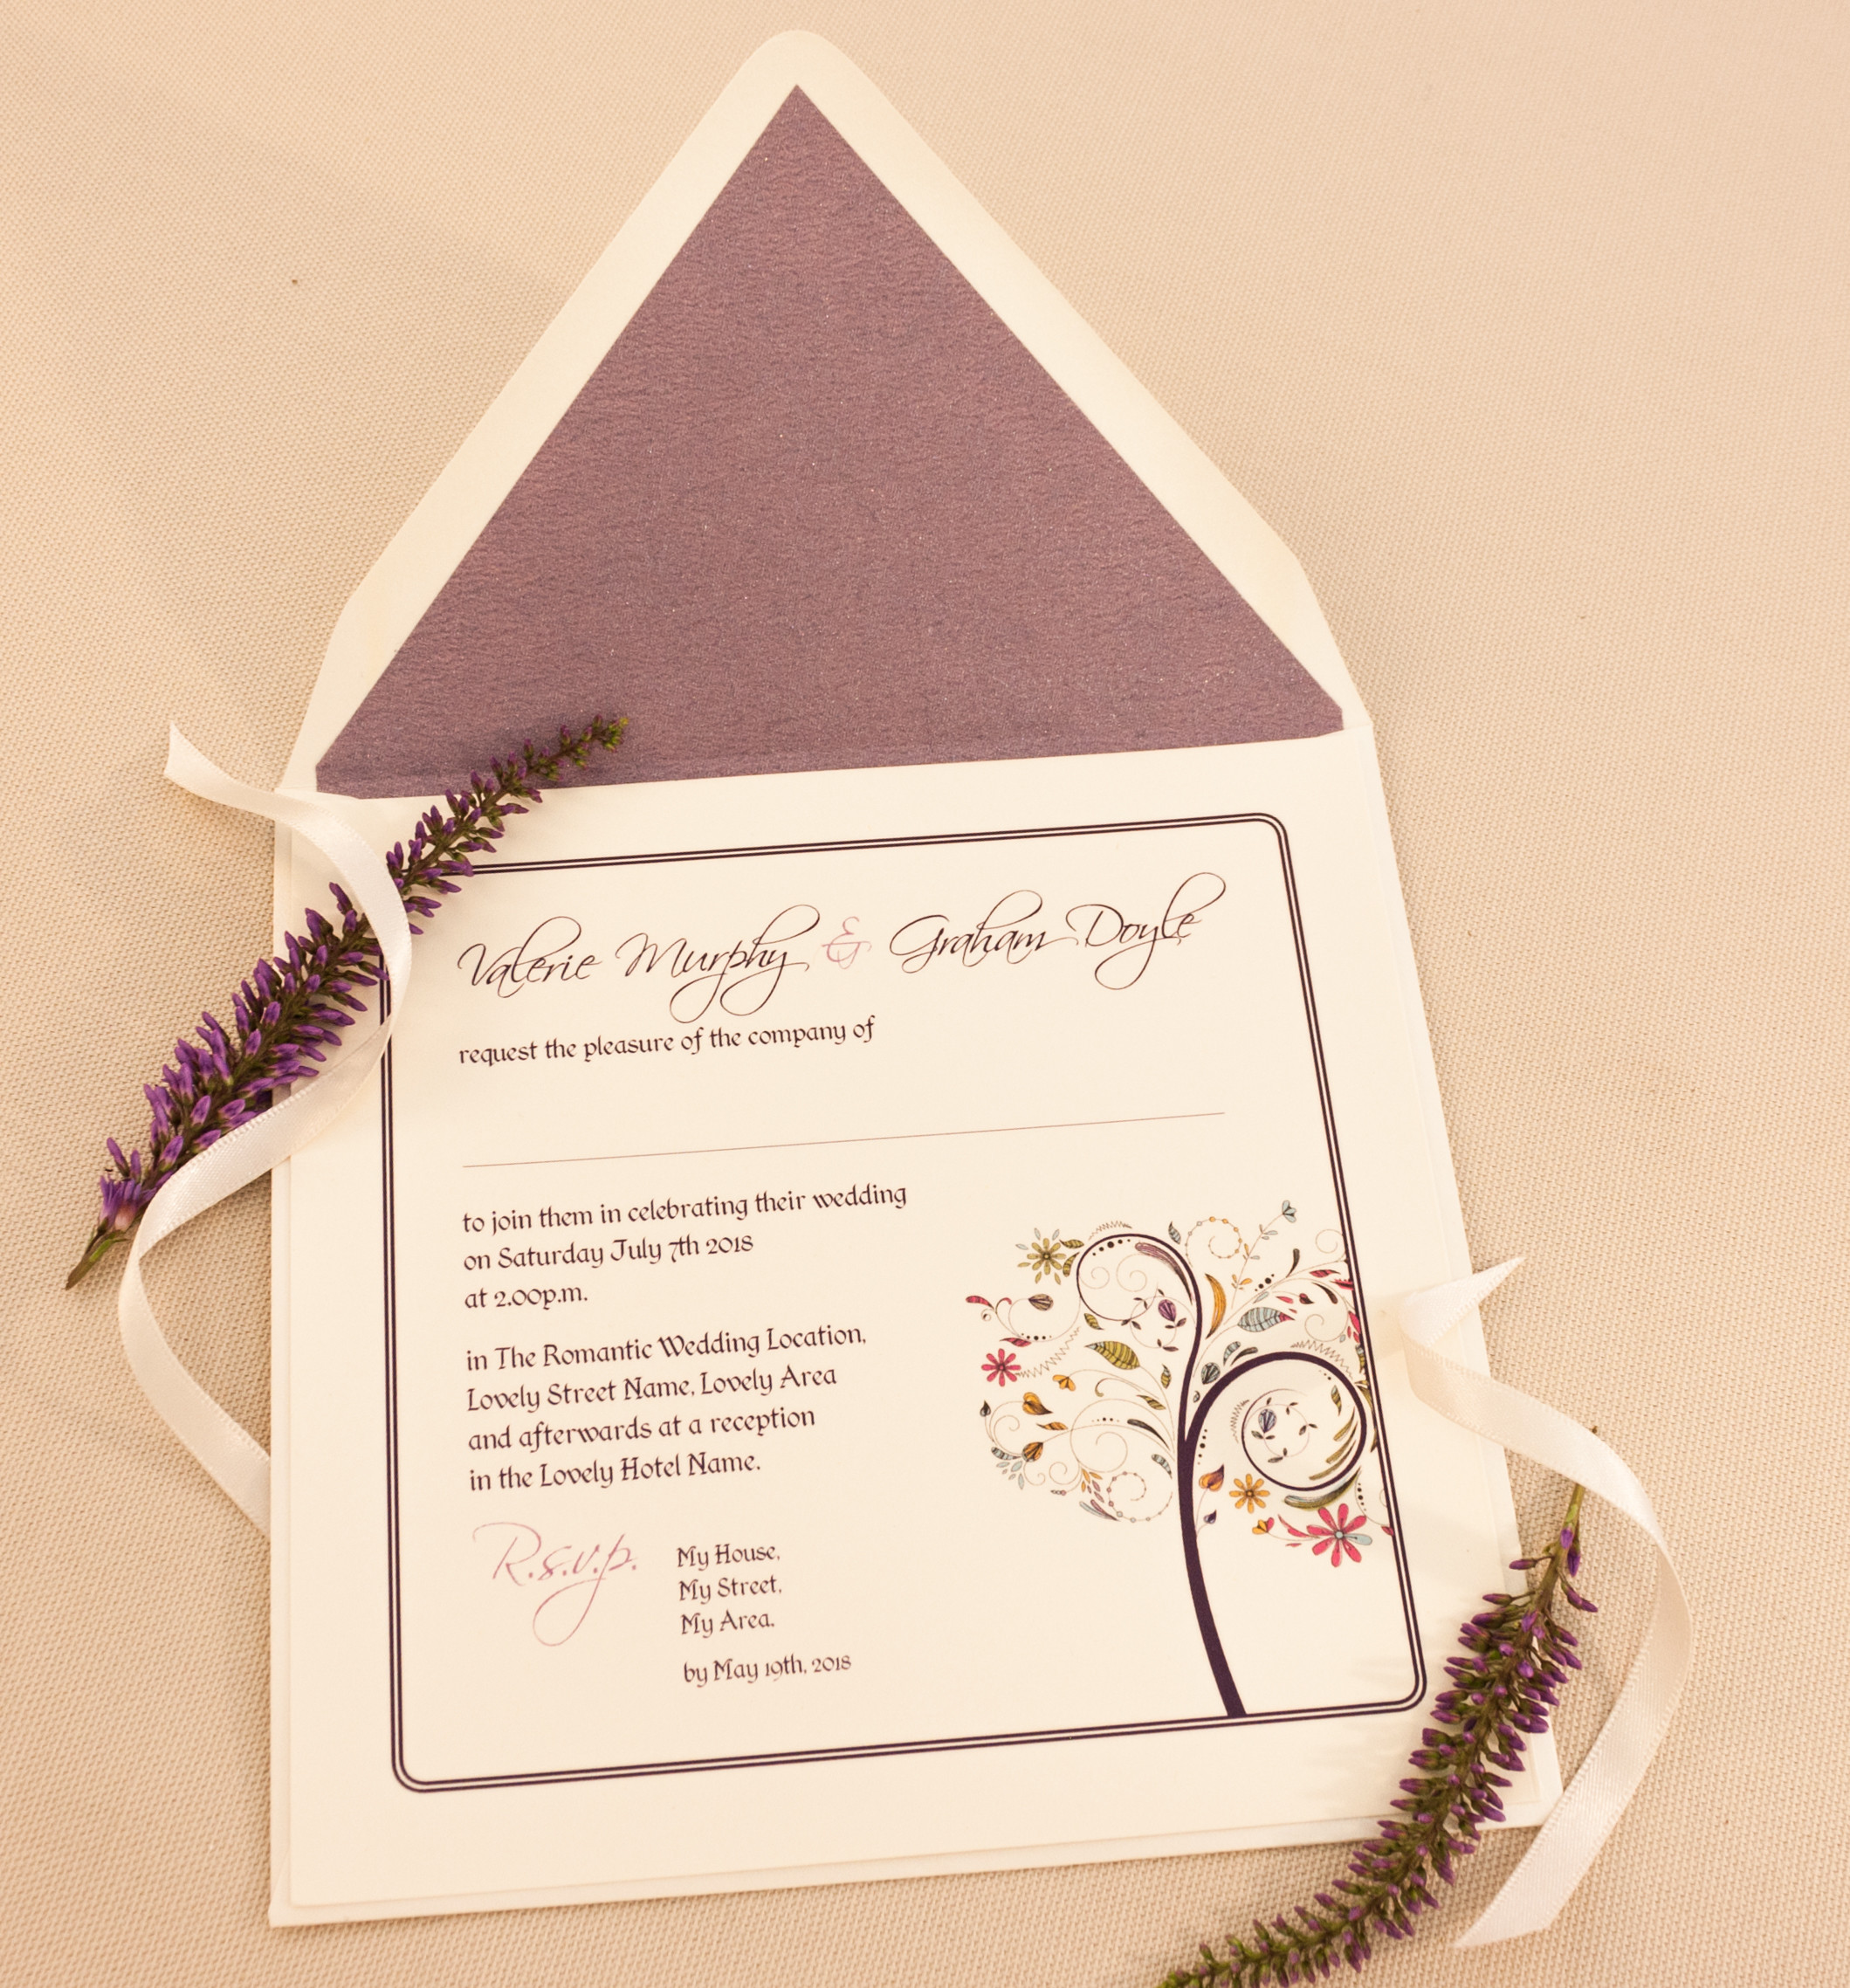 Wedding Stationery Specialists Ireland | Daintree | Covent Garden ...